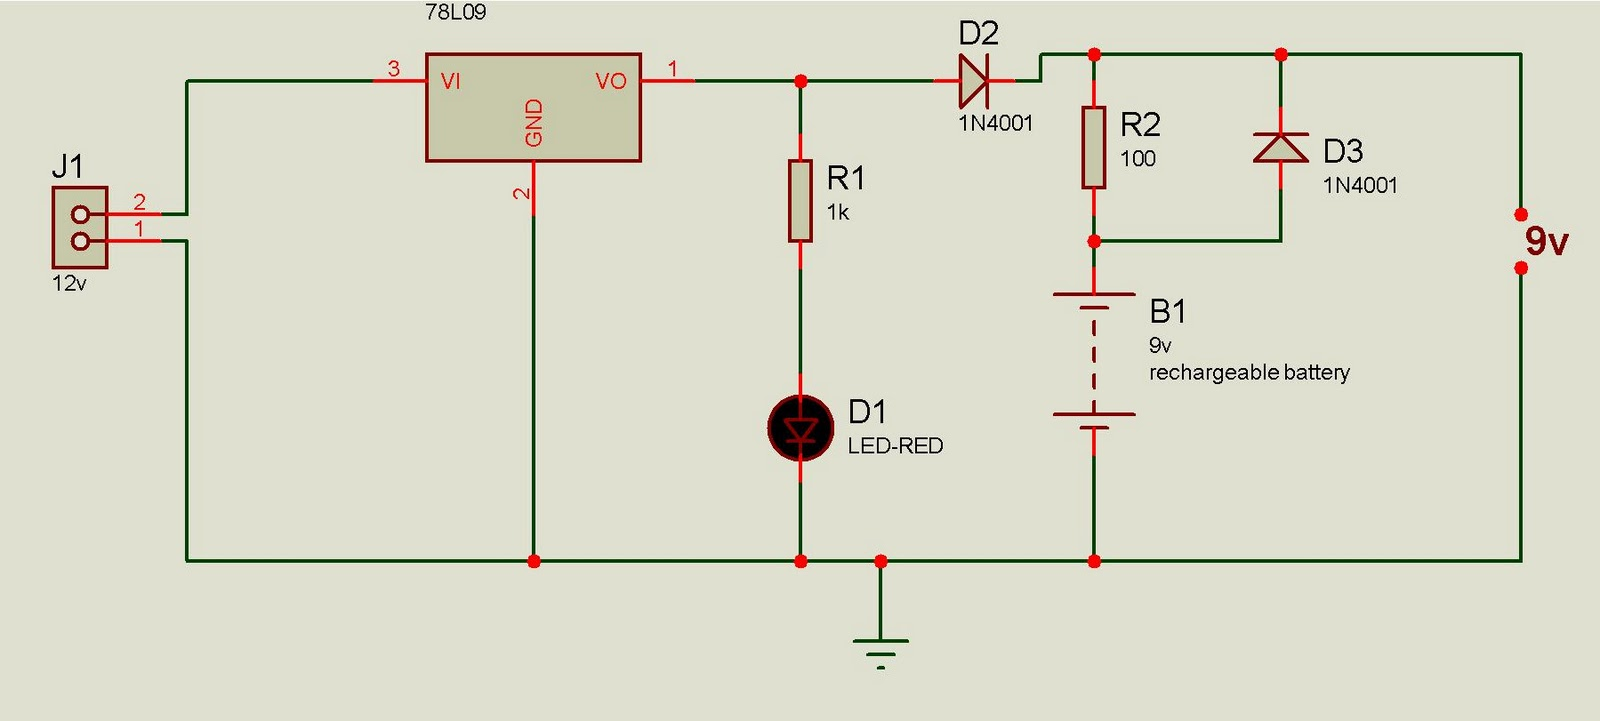 the circuit is simple to construct .Regulator IC 7809 volts regulated DC  for powering the circuit as well as to charge the rechargeable battery.